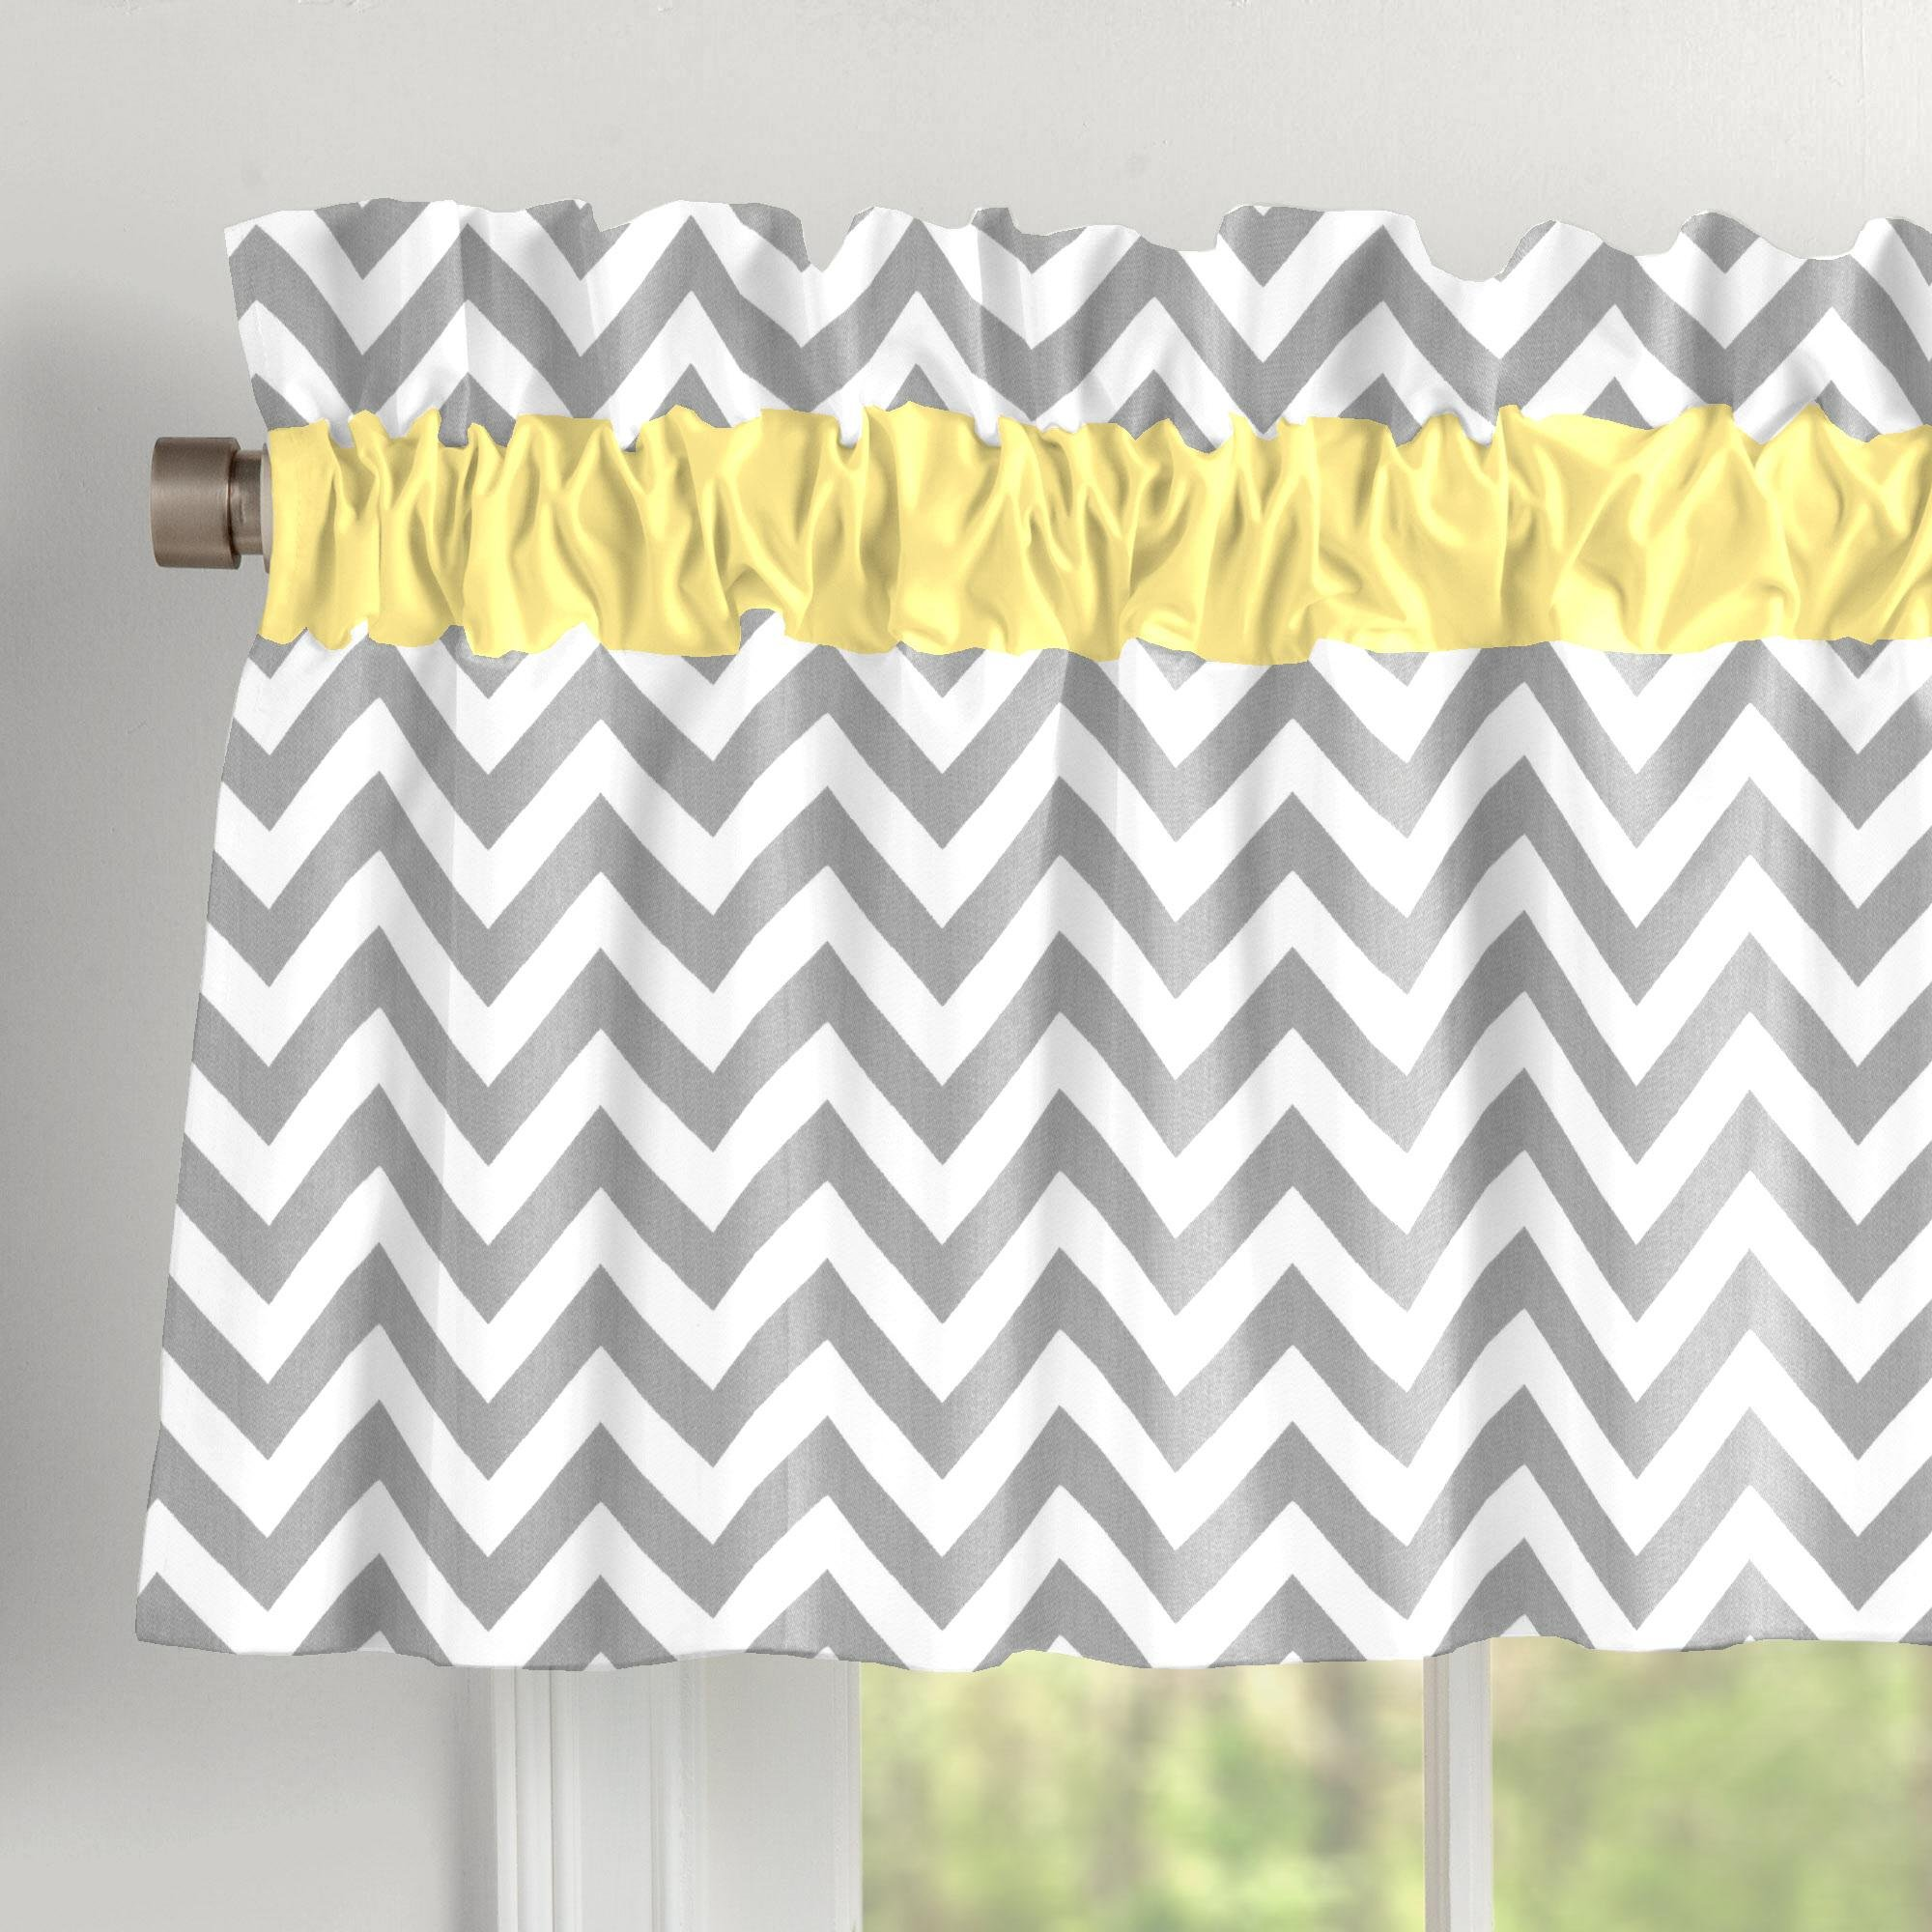 Carousel Designs Gray and Yellow Zig Zag Window Valance Rod Pocket by Carousel Designs